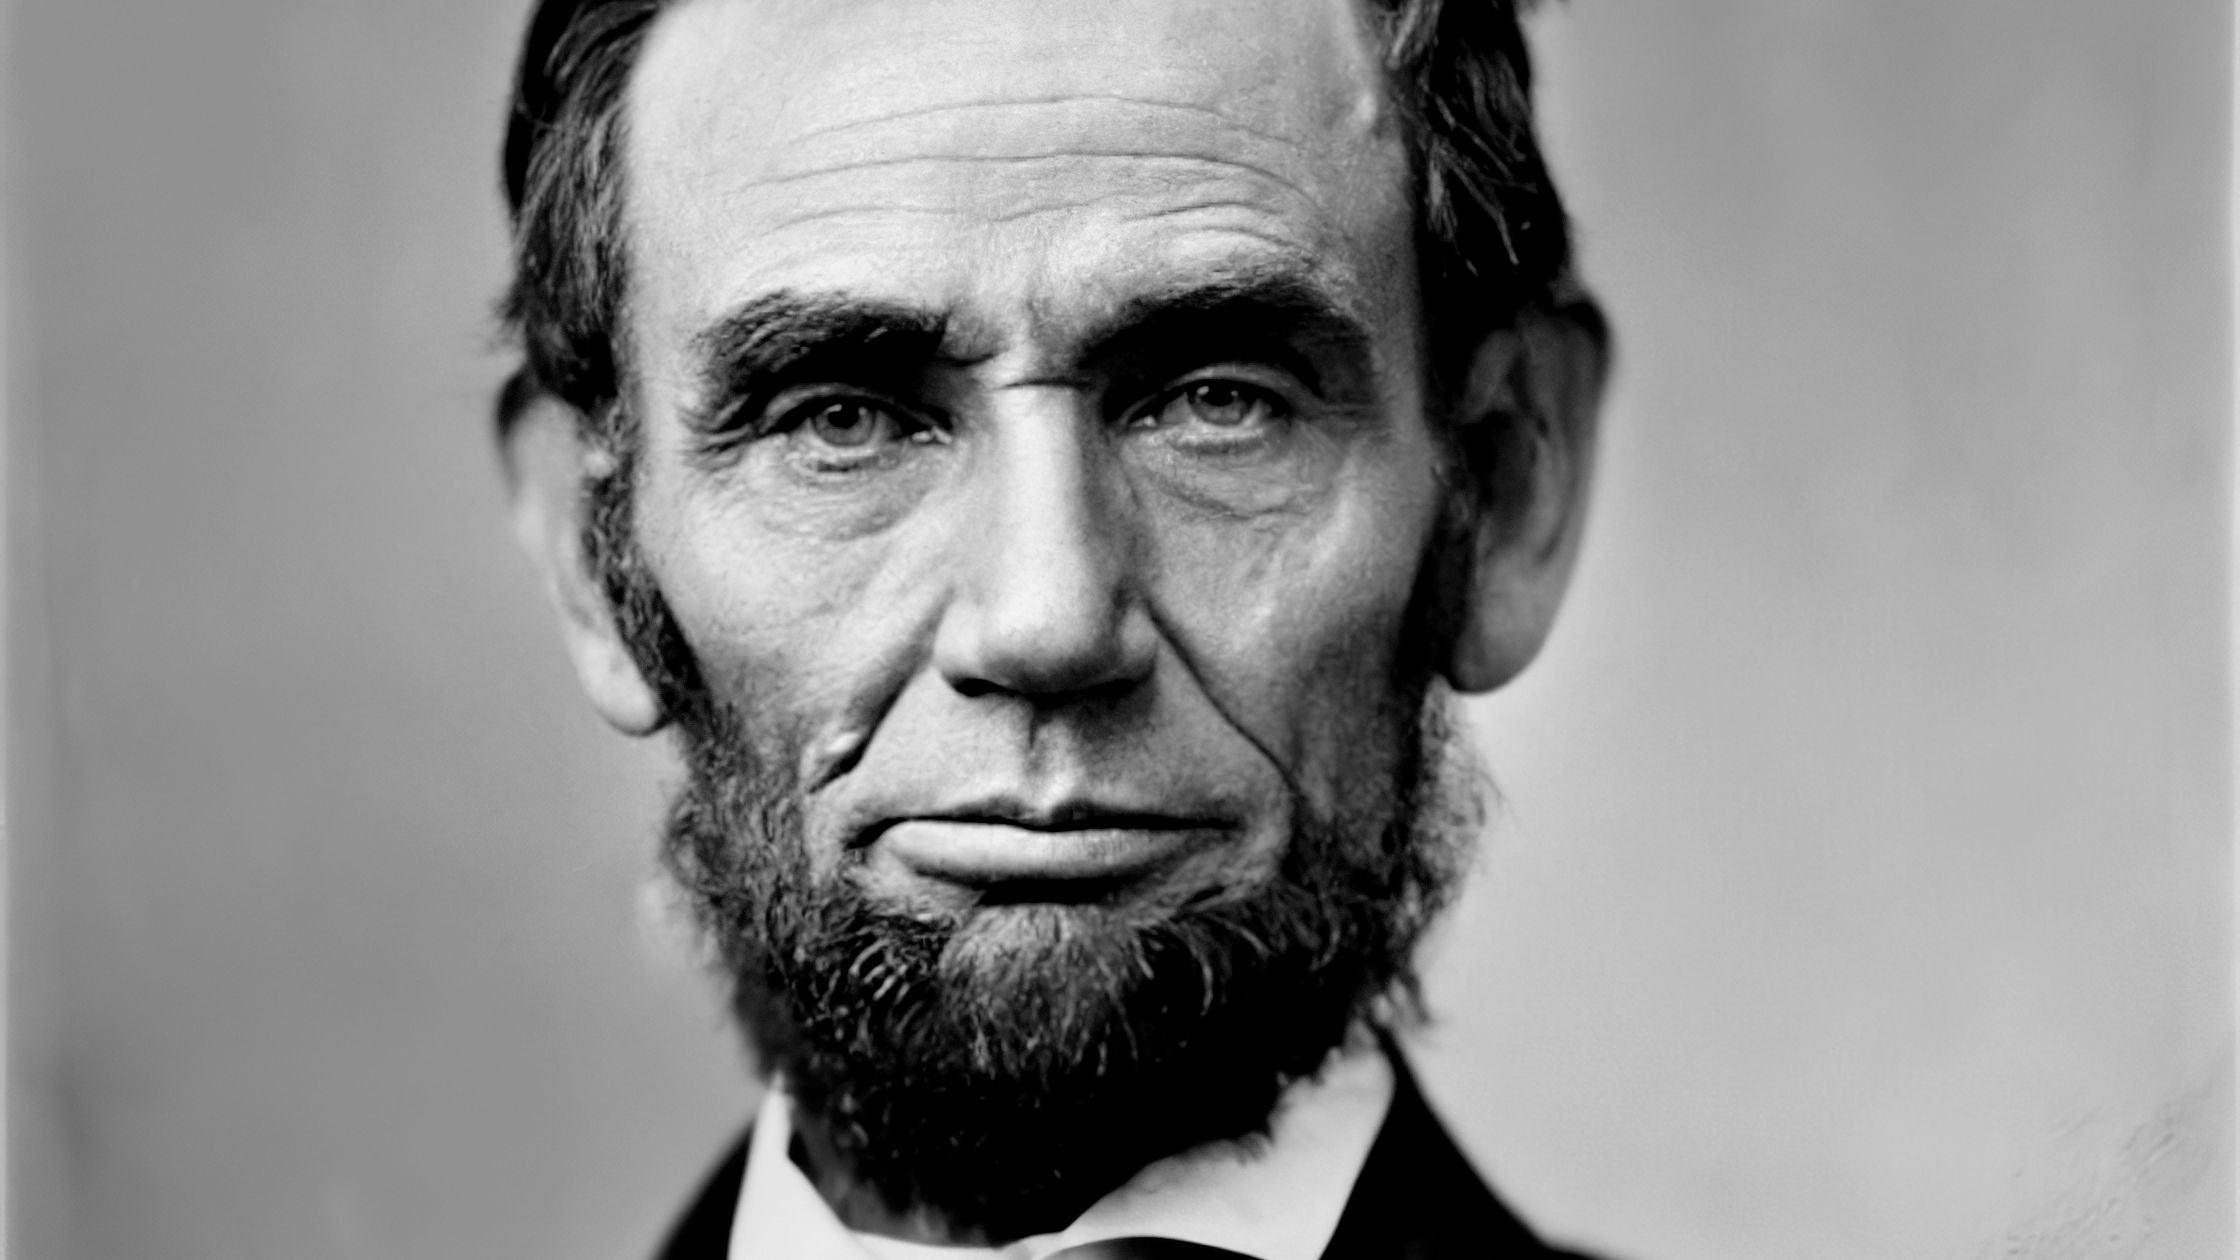 An actual real life photograph of Abraham Lincoln.